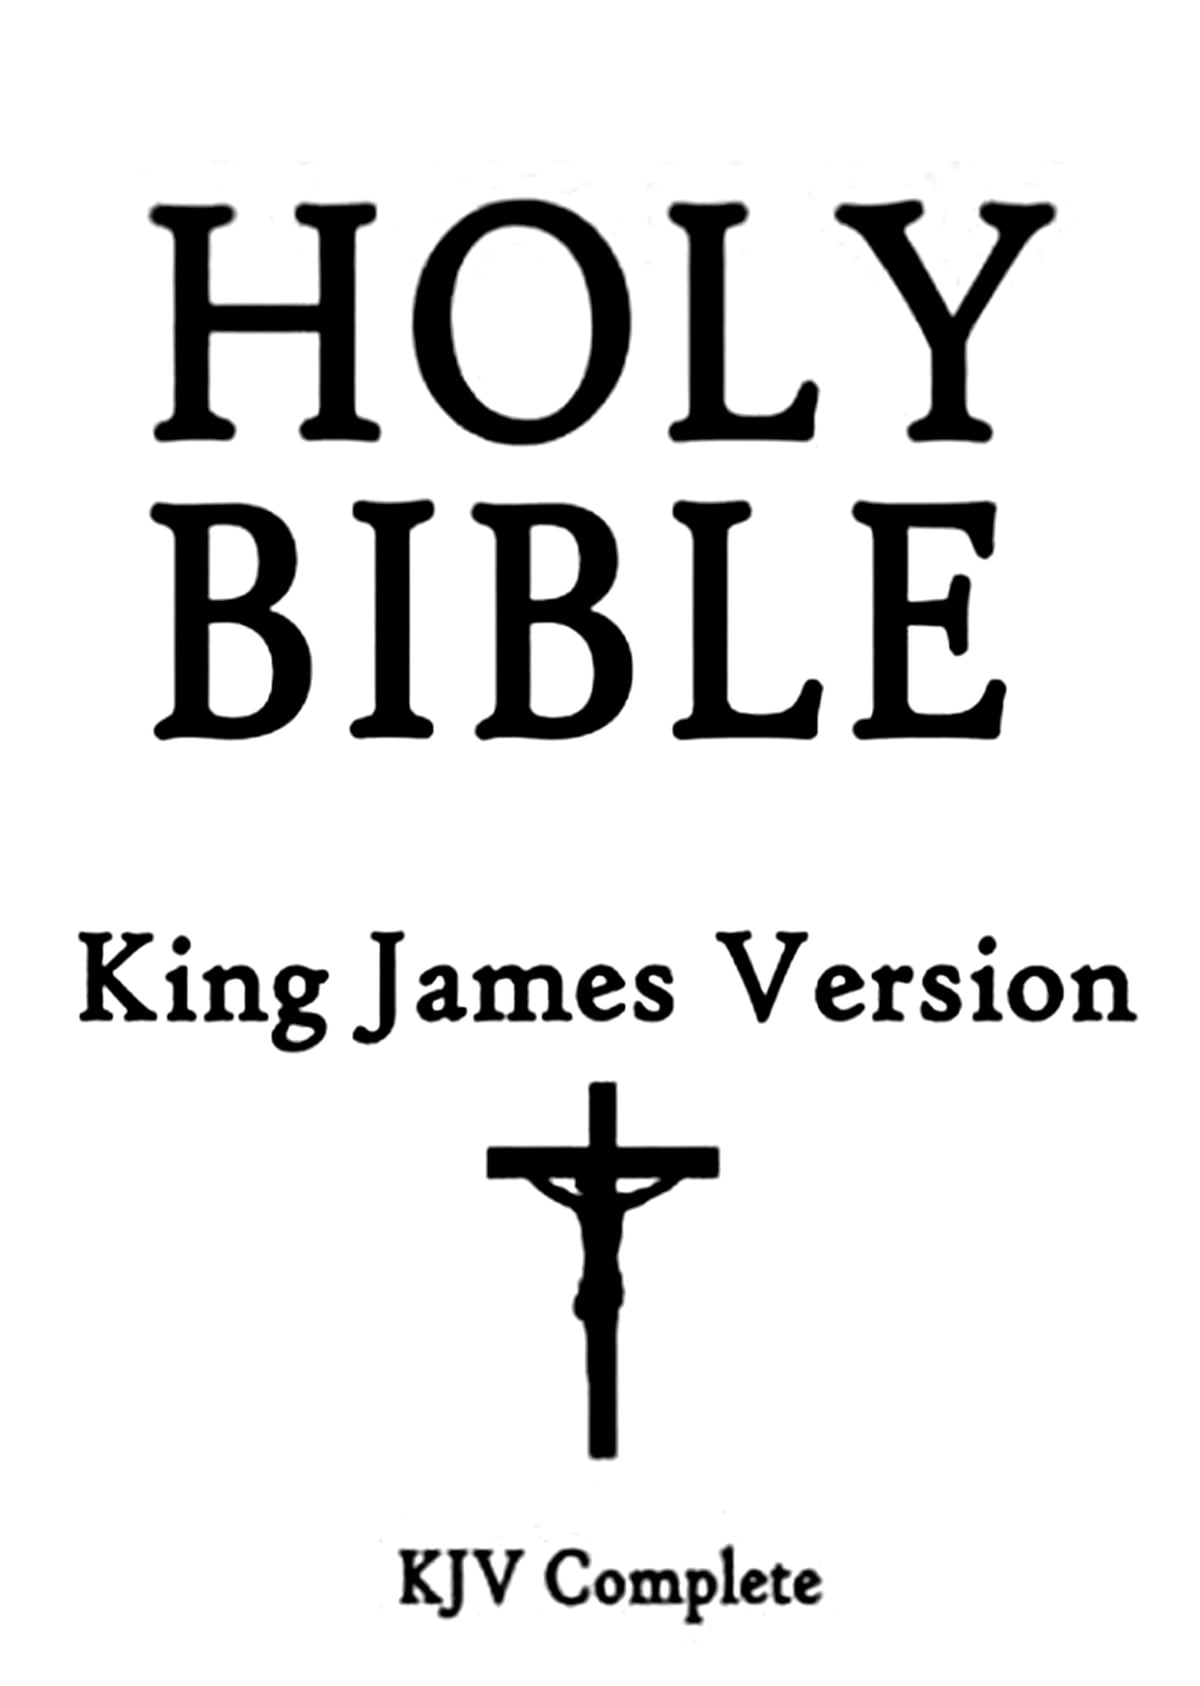 The Holy Bible, King James Version (Old and New Testaments